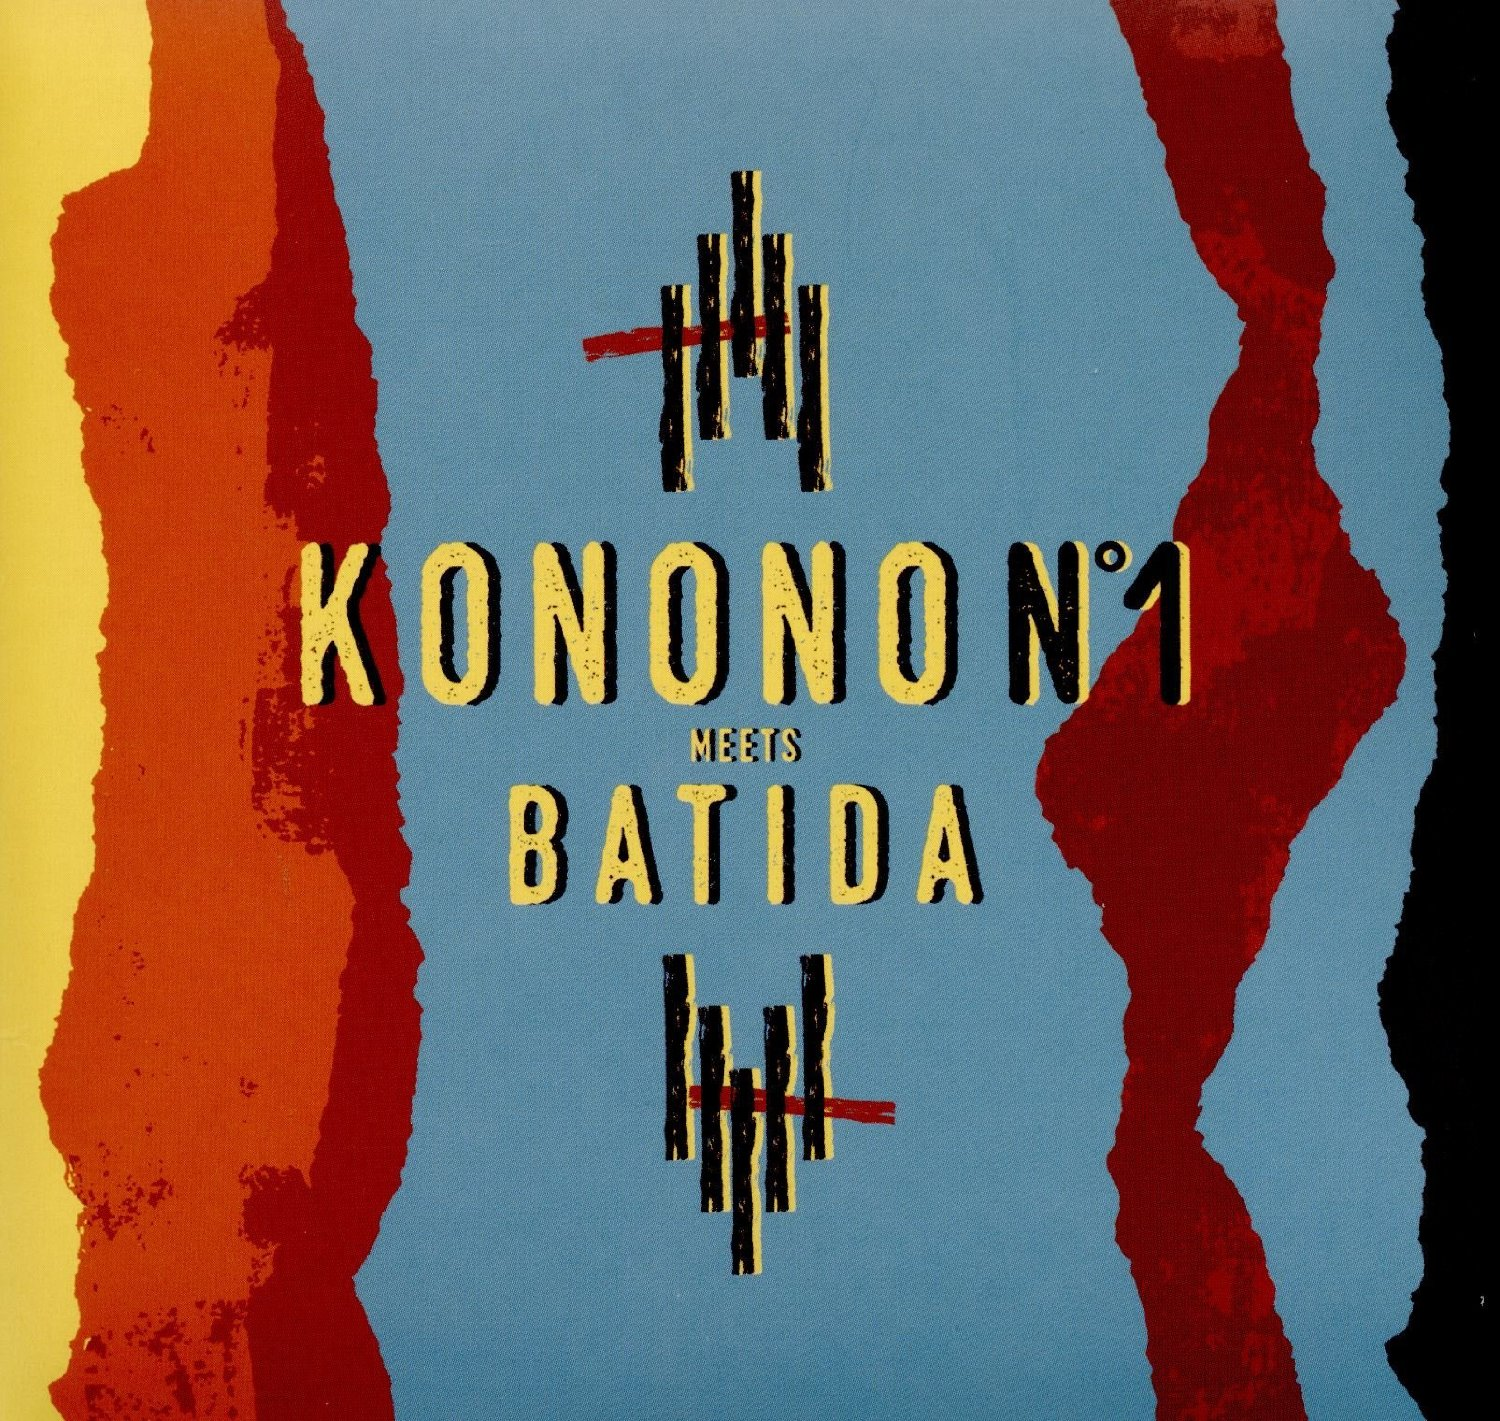 Konono No 1 Meets Batida